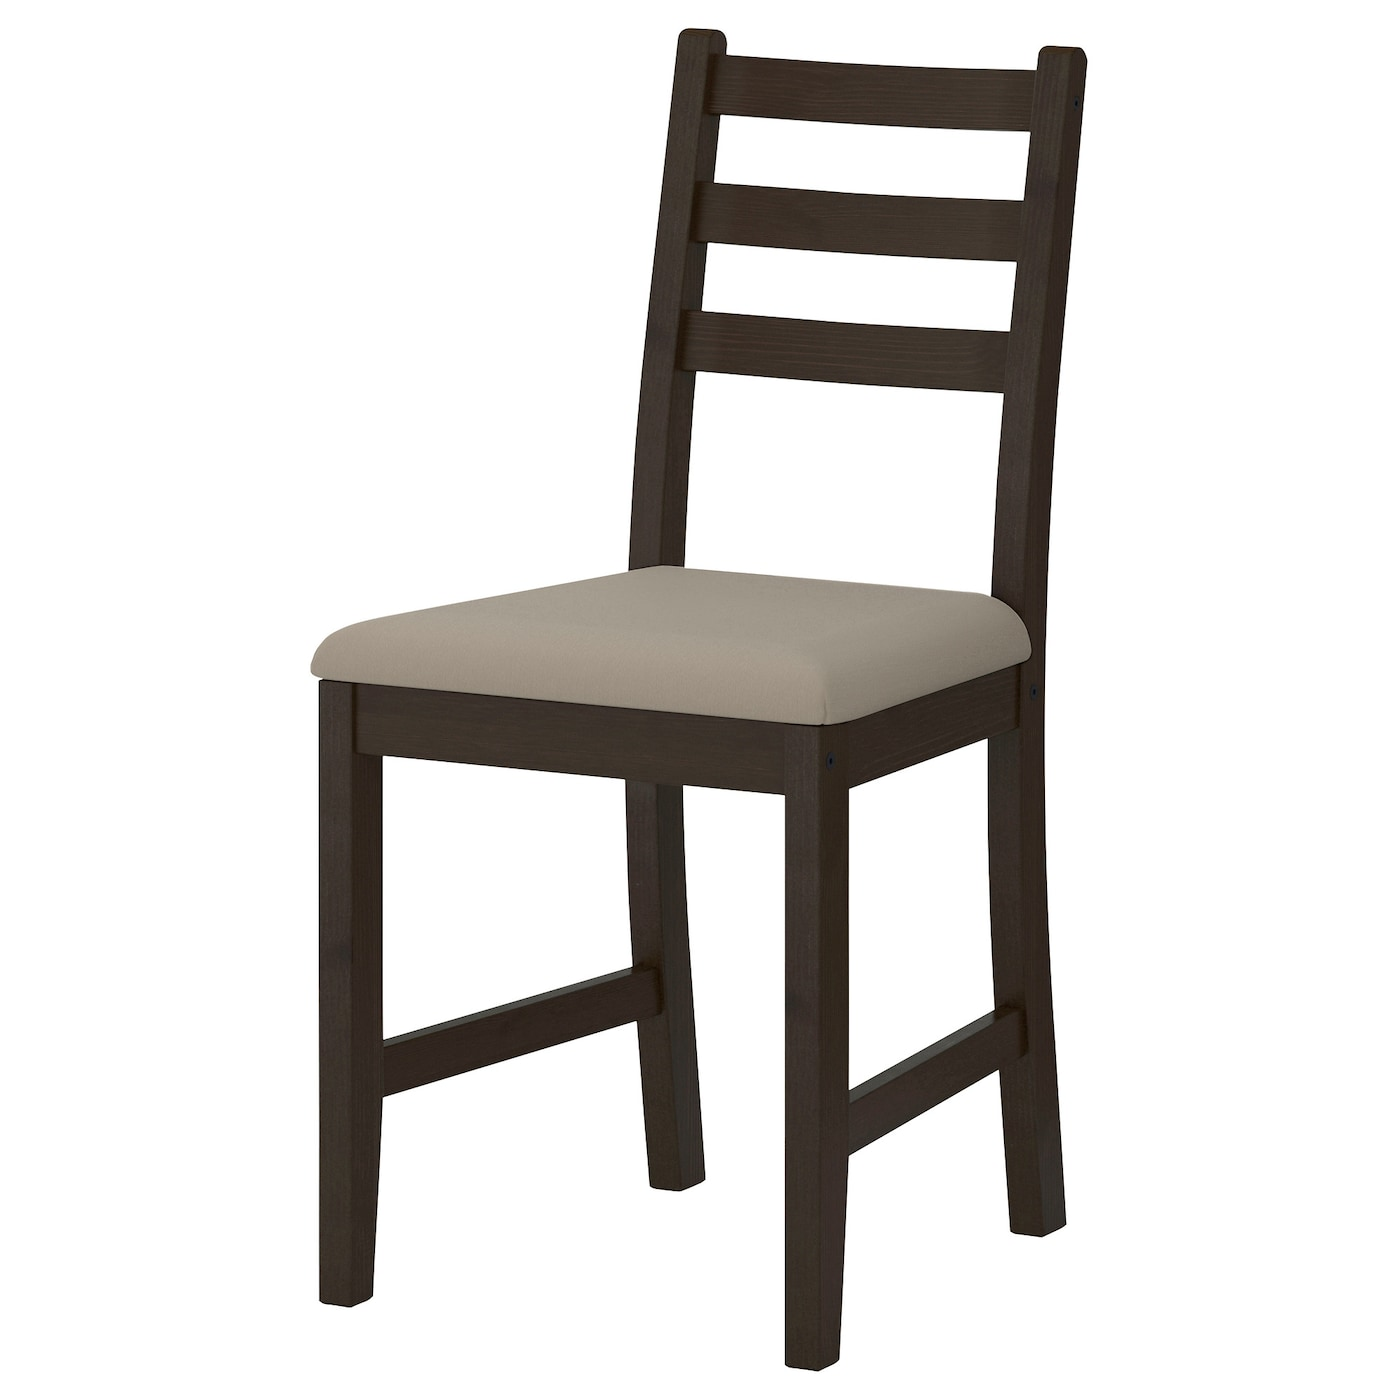 Lerhamn chair black brown ramna beige ikea for Sillas para comedor